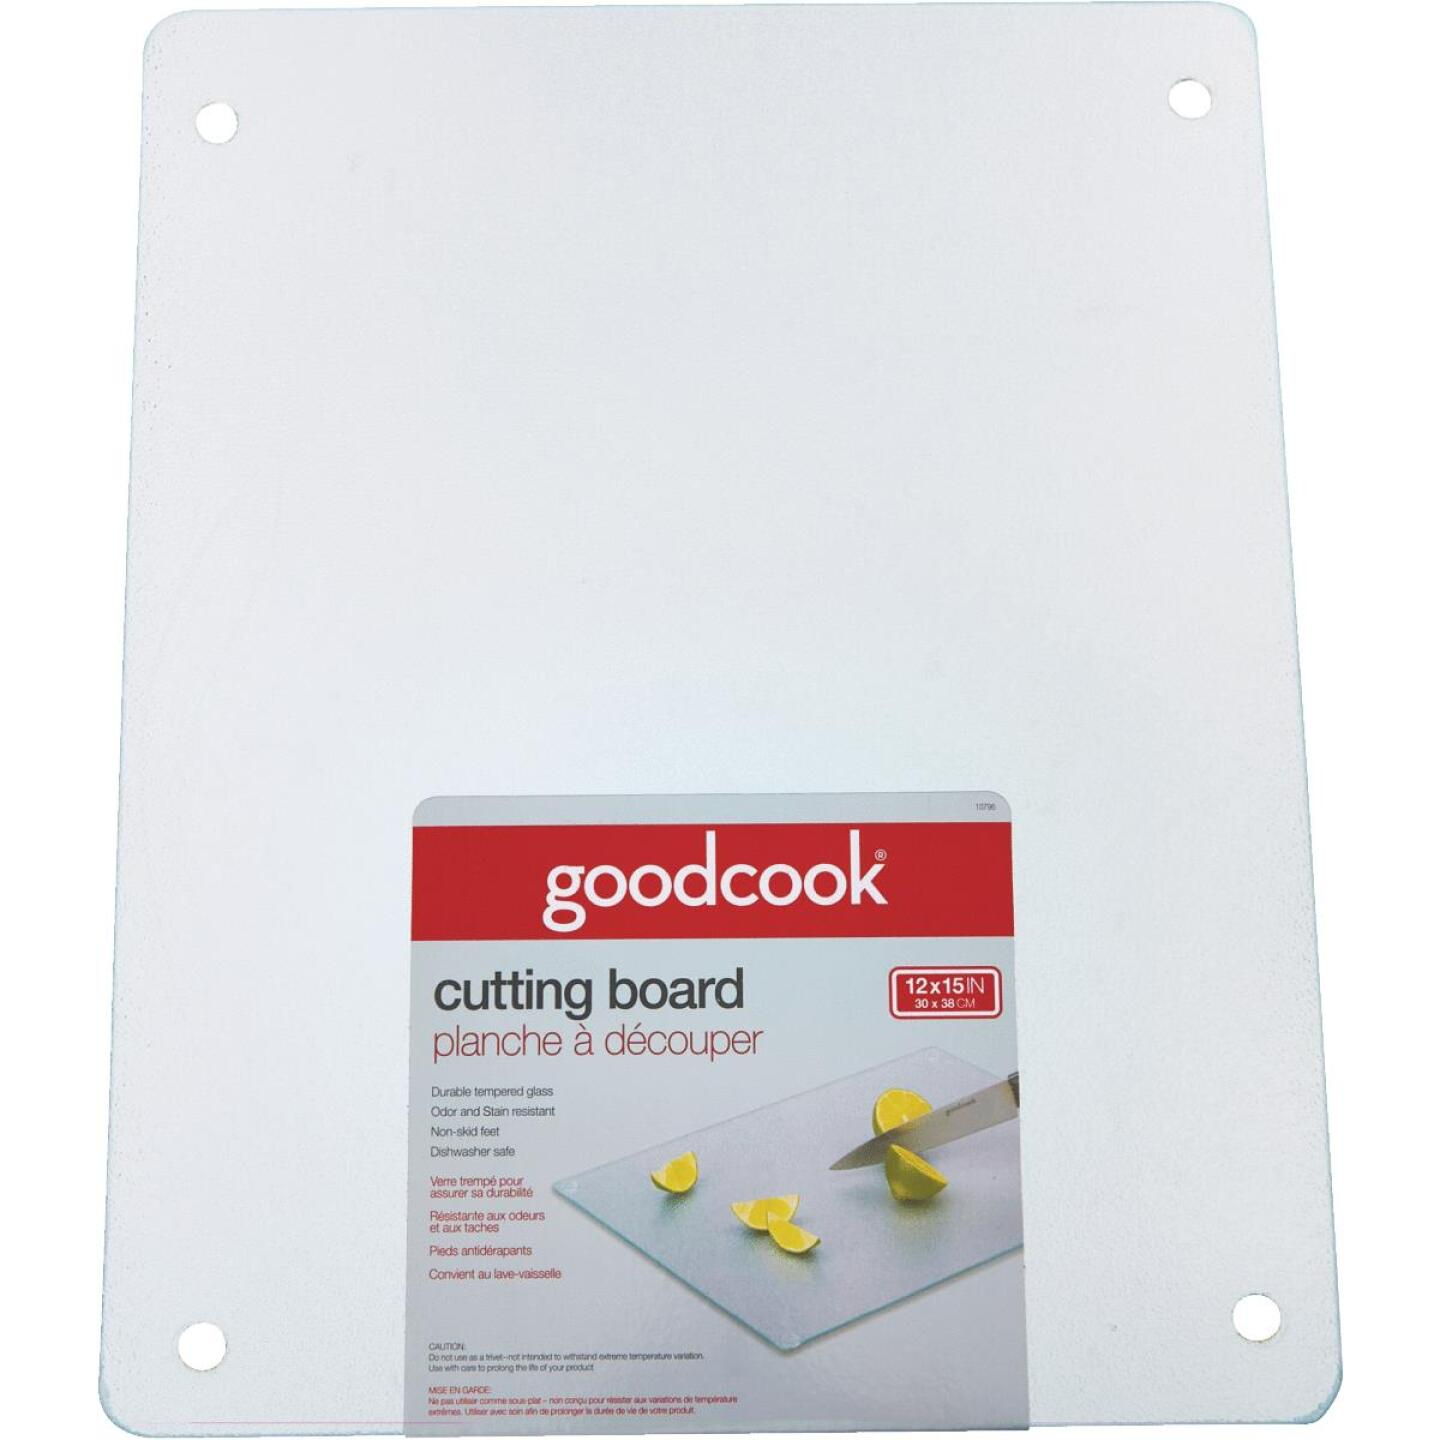 GoodCook 12 In. x 15 In. Silver Tempered Glass Cutting Board Image 1